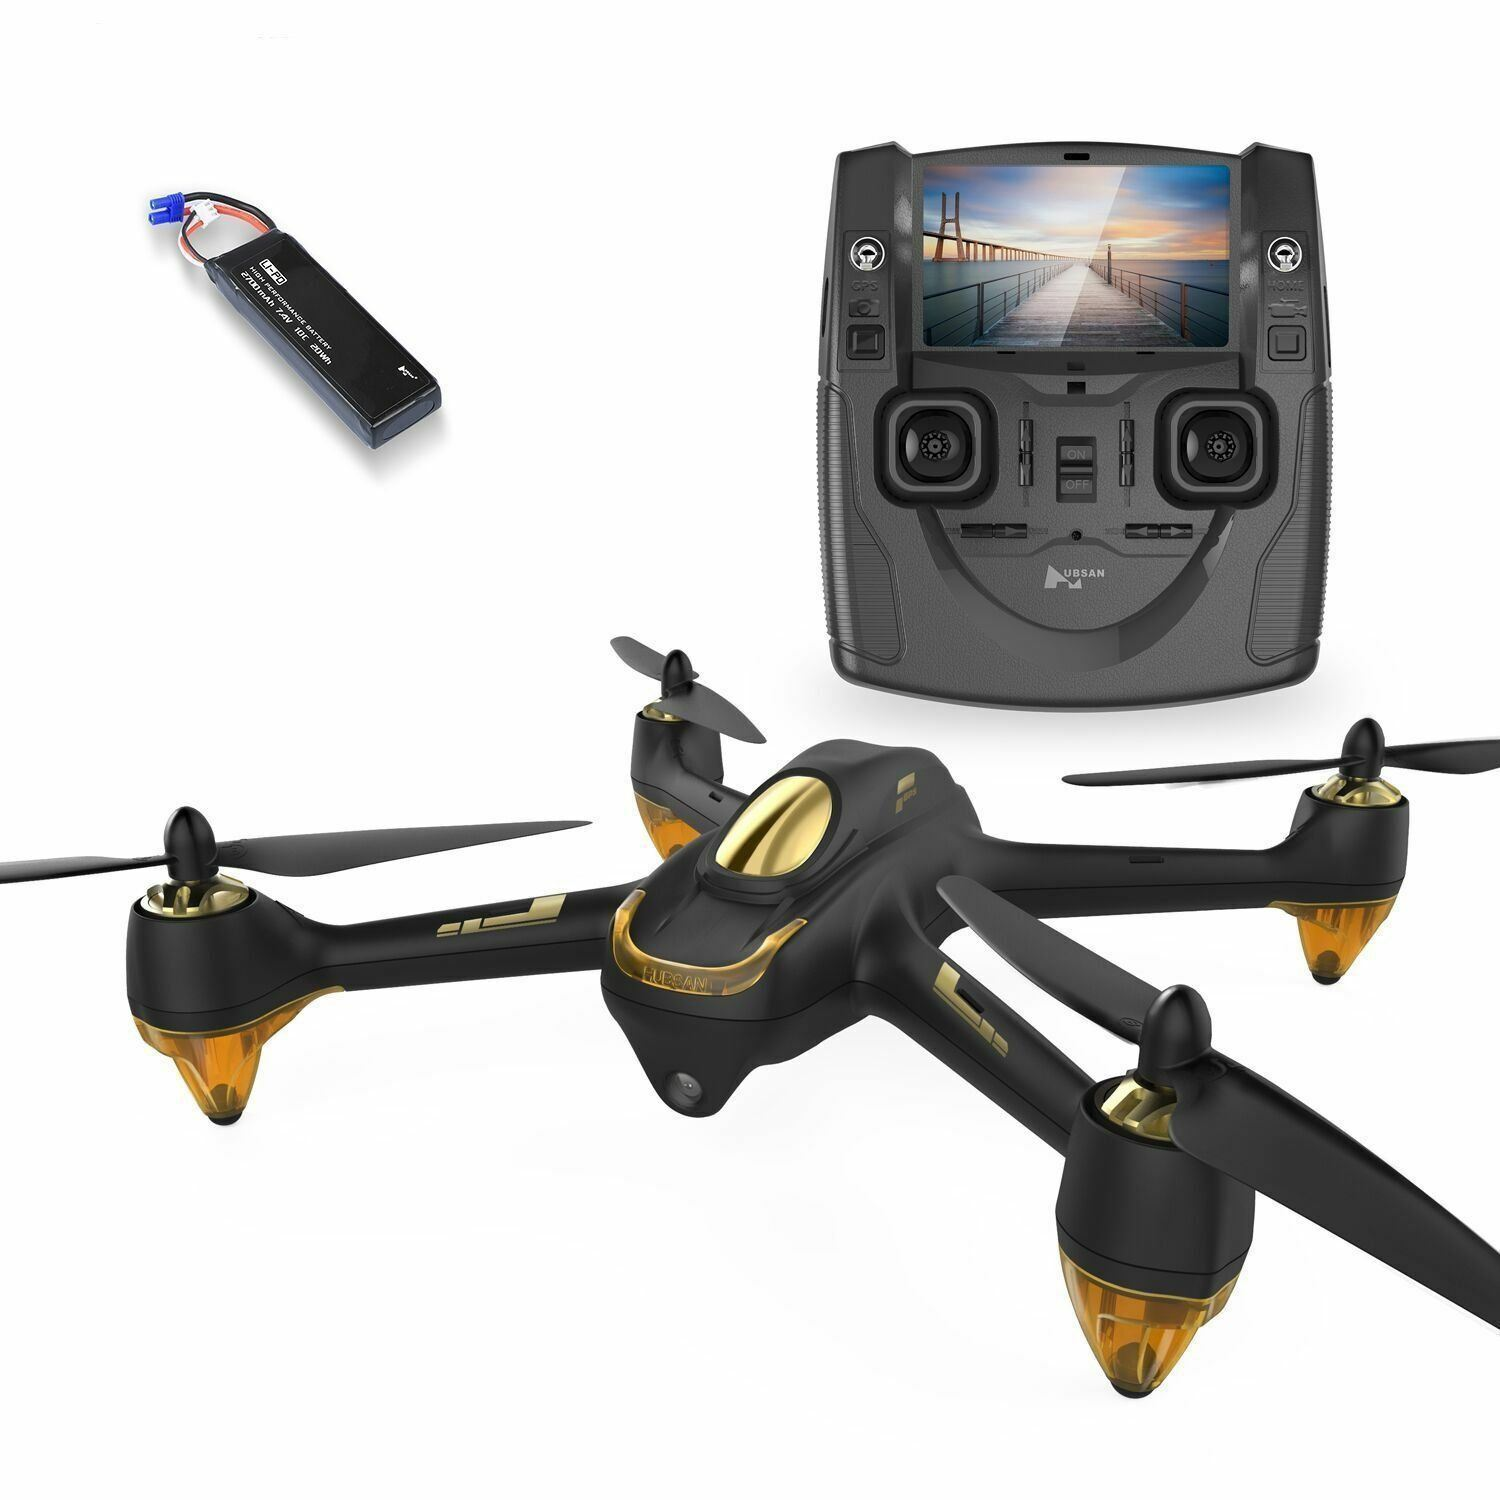 Drone w  4 Channel GPS Altitude Mode 5.8GHz Transmitter And HD Camera Quadcopter